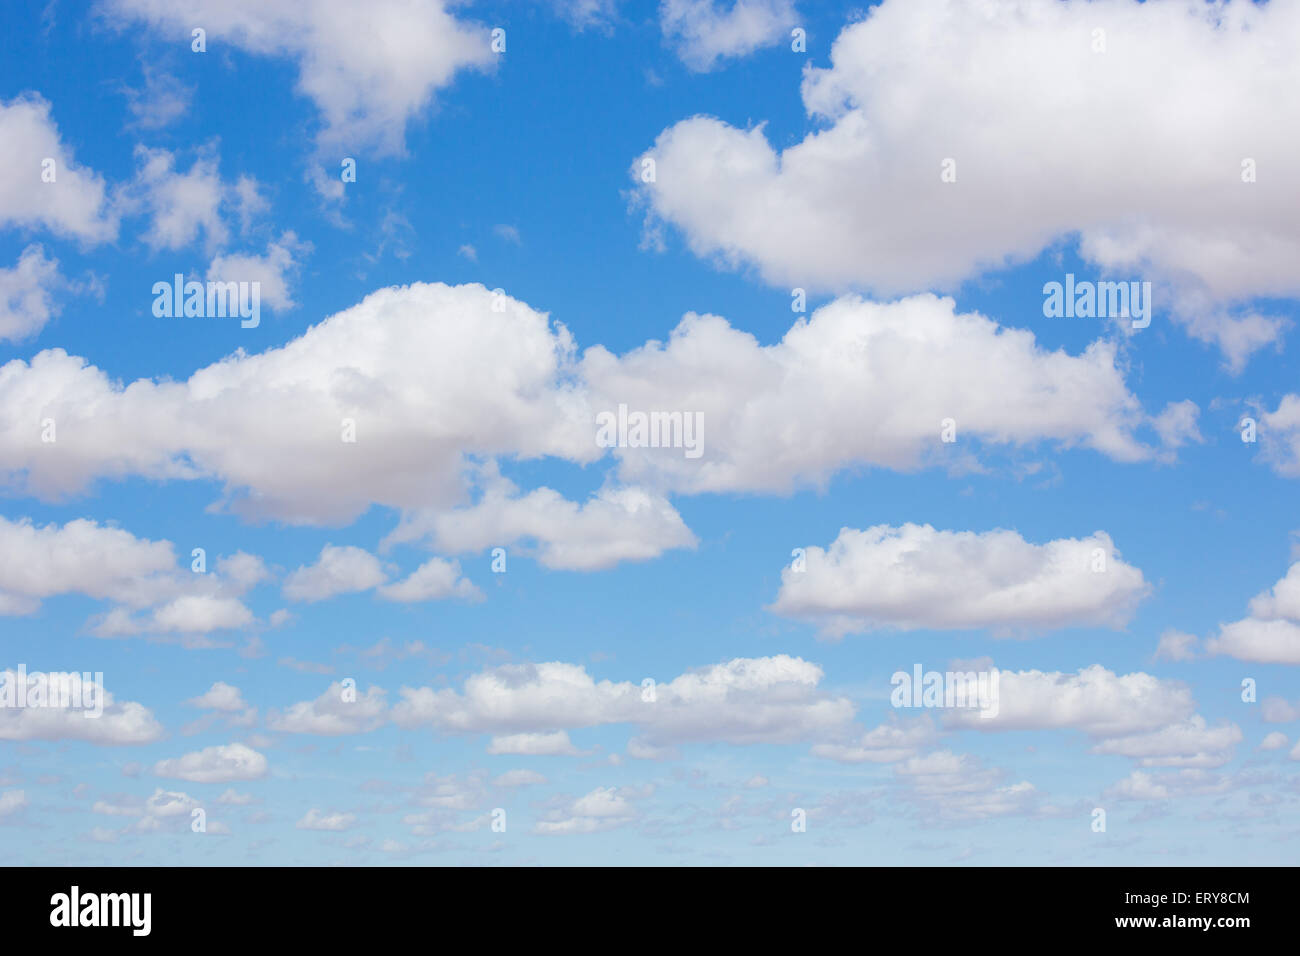 Blue sky and clouds, Australia - Stock Image